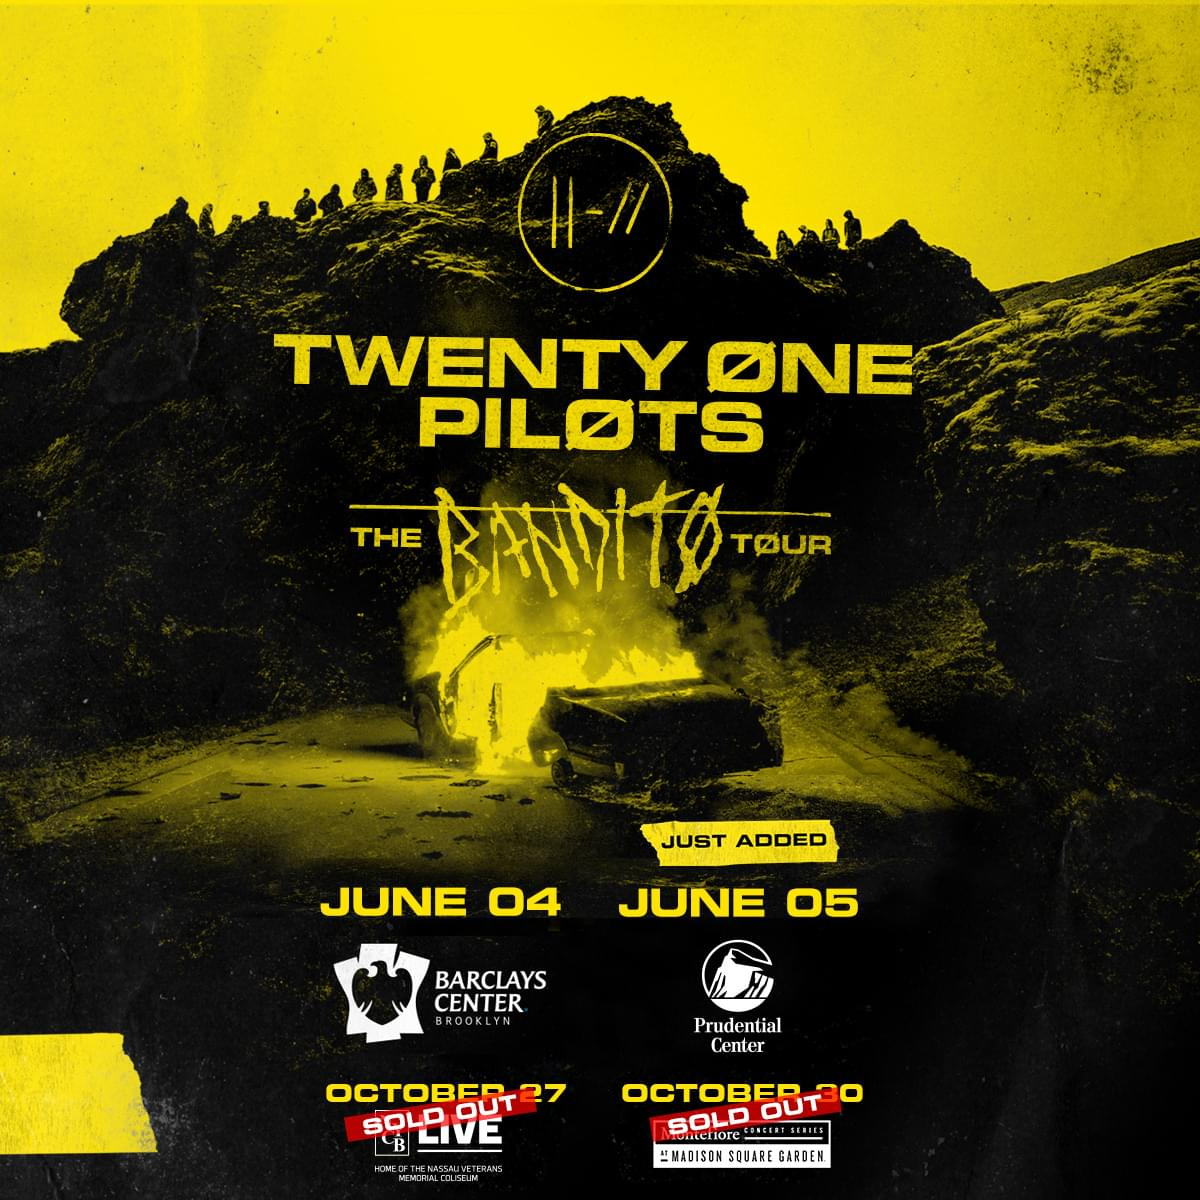 Win Twenty One Pilots Tickets All Weekend Long!